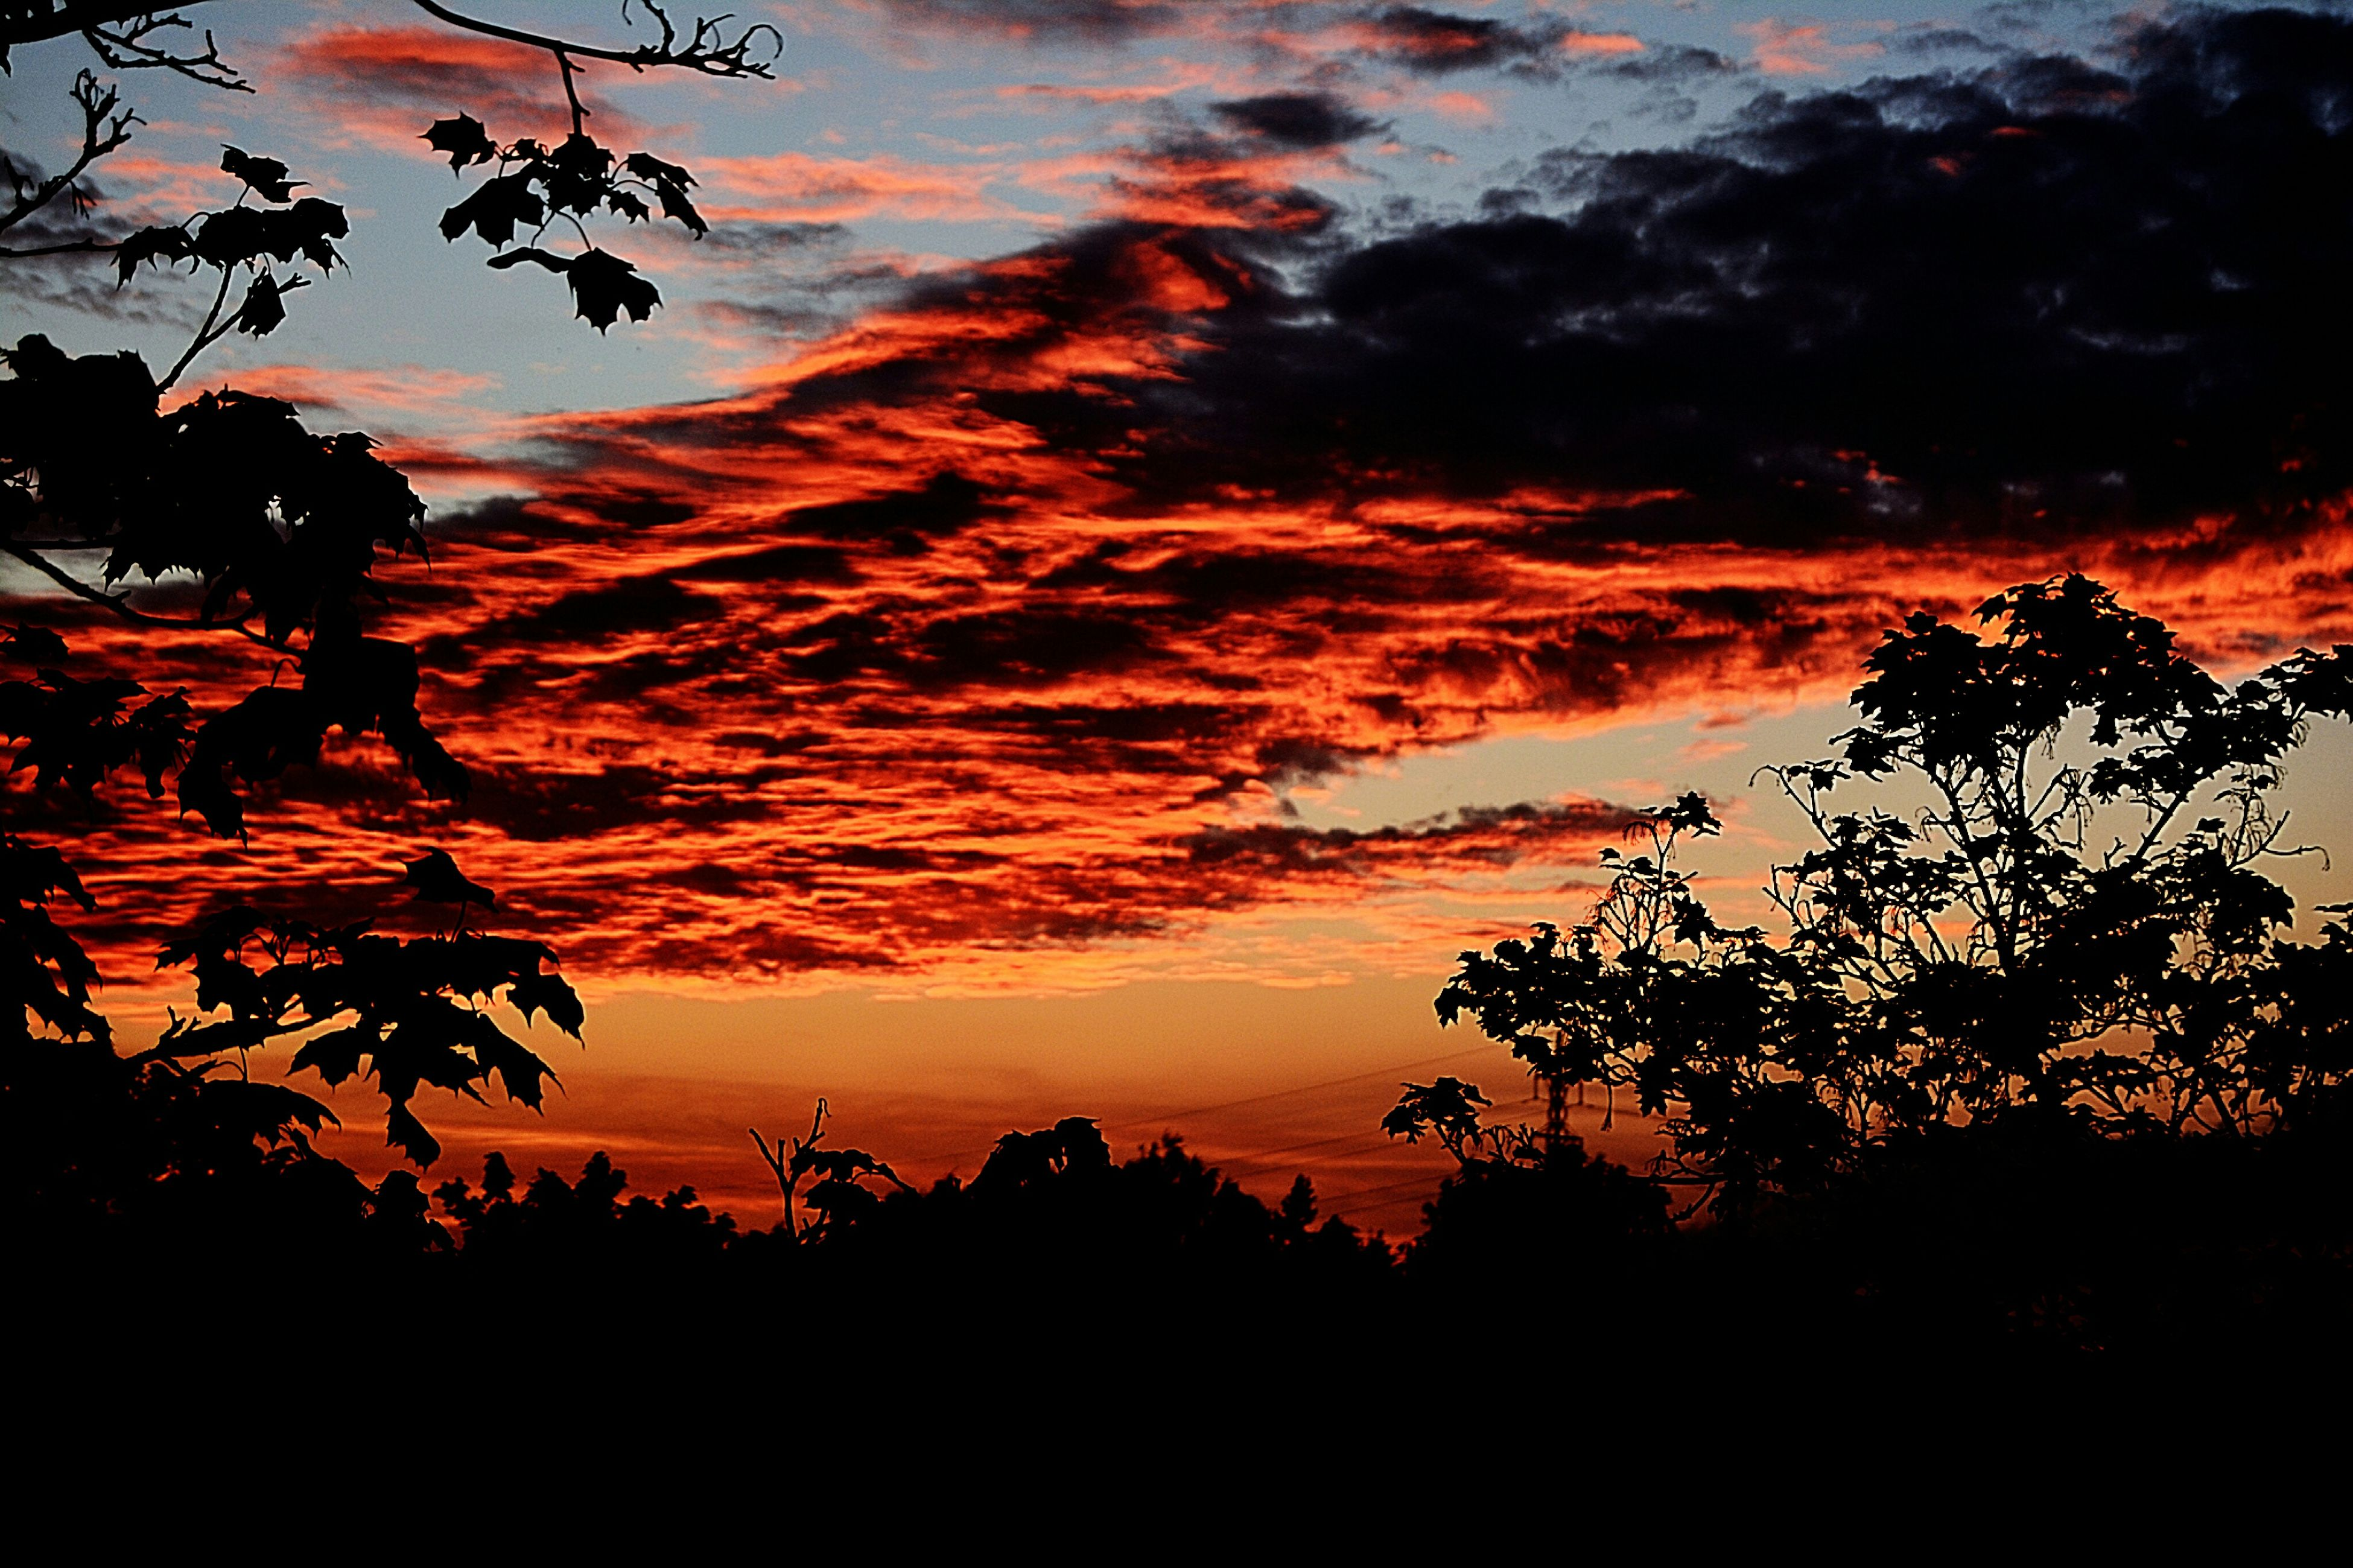 sunset, silhouette, tree, sky, beauty in nature, orange color, scenics, tranquility, tranquil scene, cloud - sky, nature, idyllic, low angle view, dramatic sky, branch, cloud, growth, outdoors, majestic, cloudy